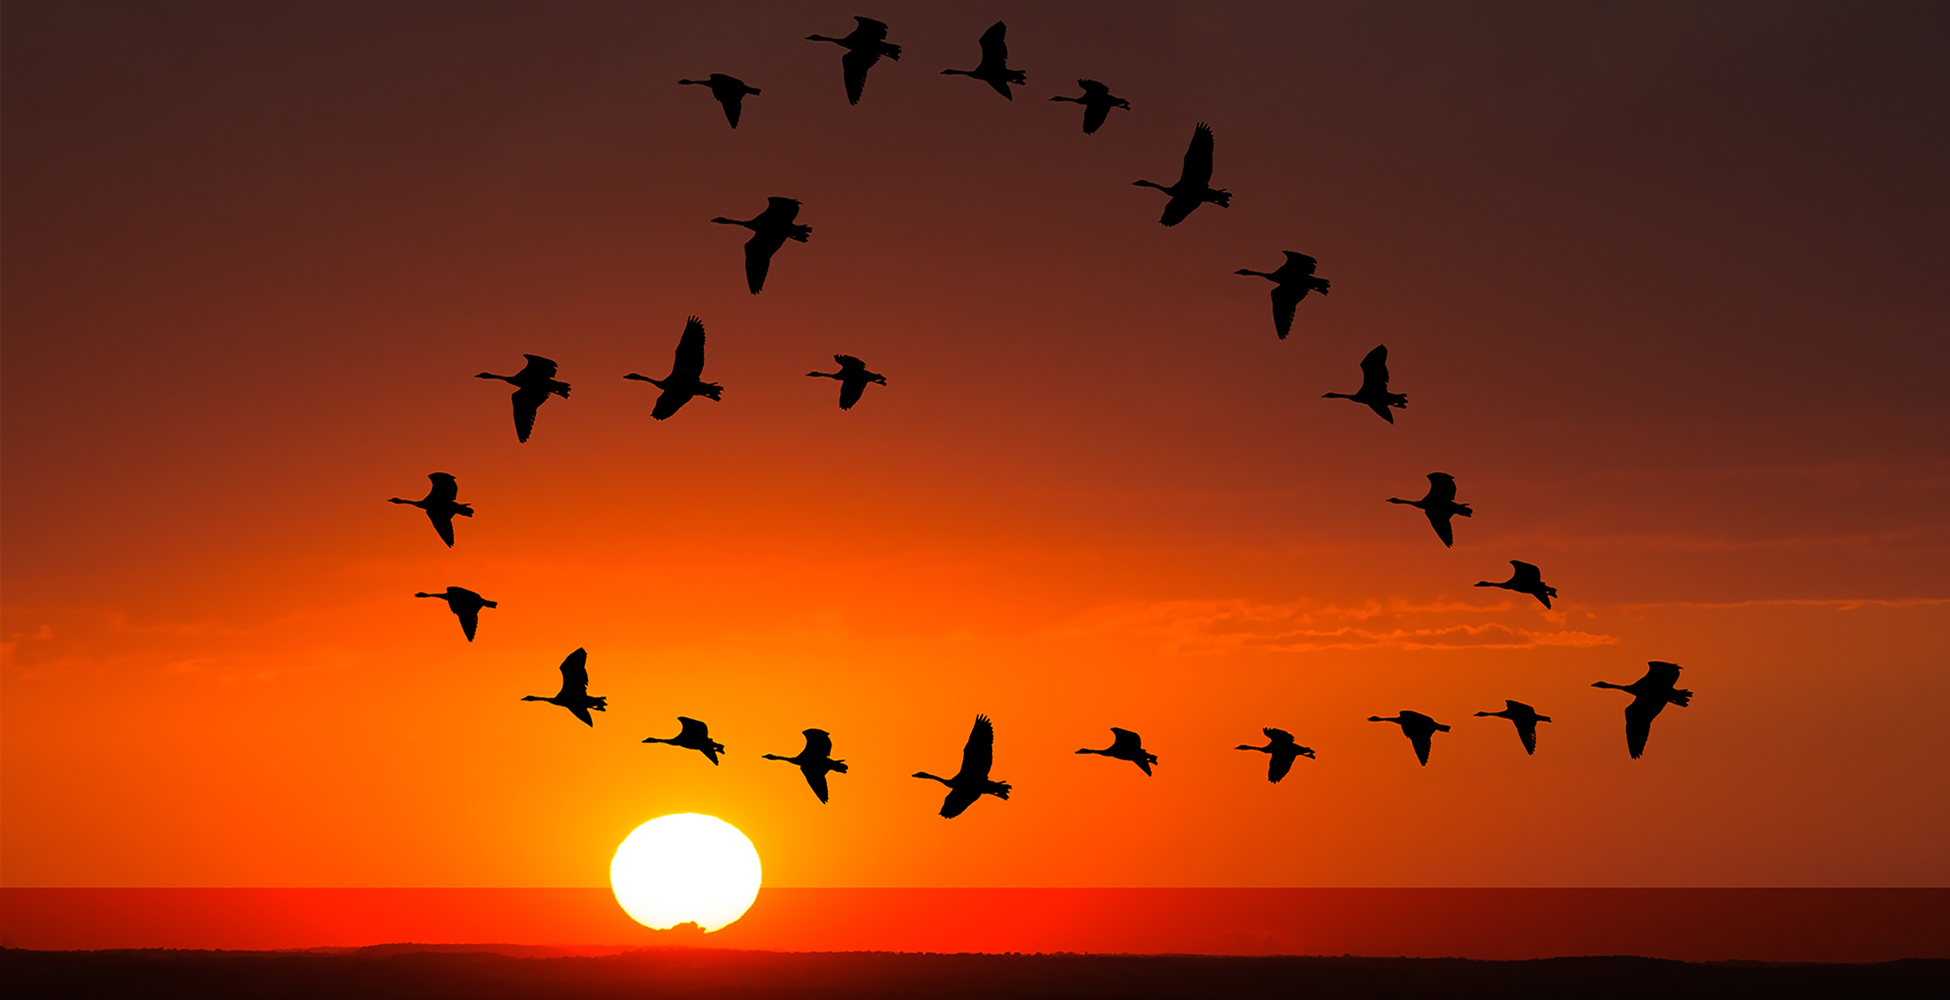 Stock image of cranes flying in heart shape against red sunset sky